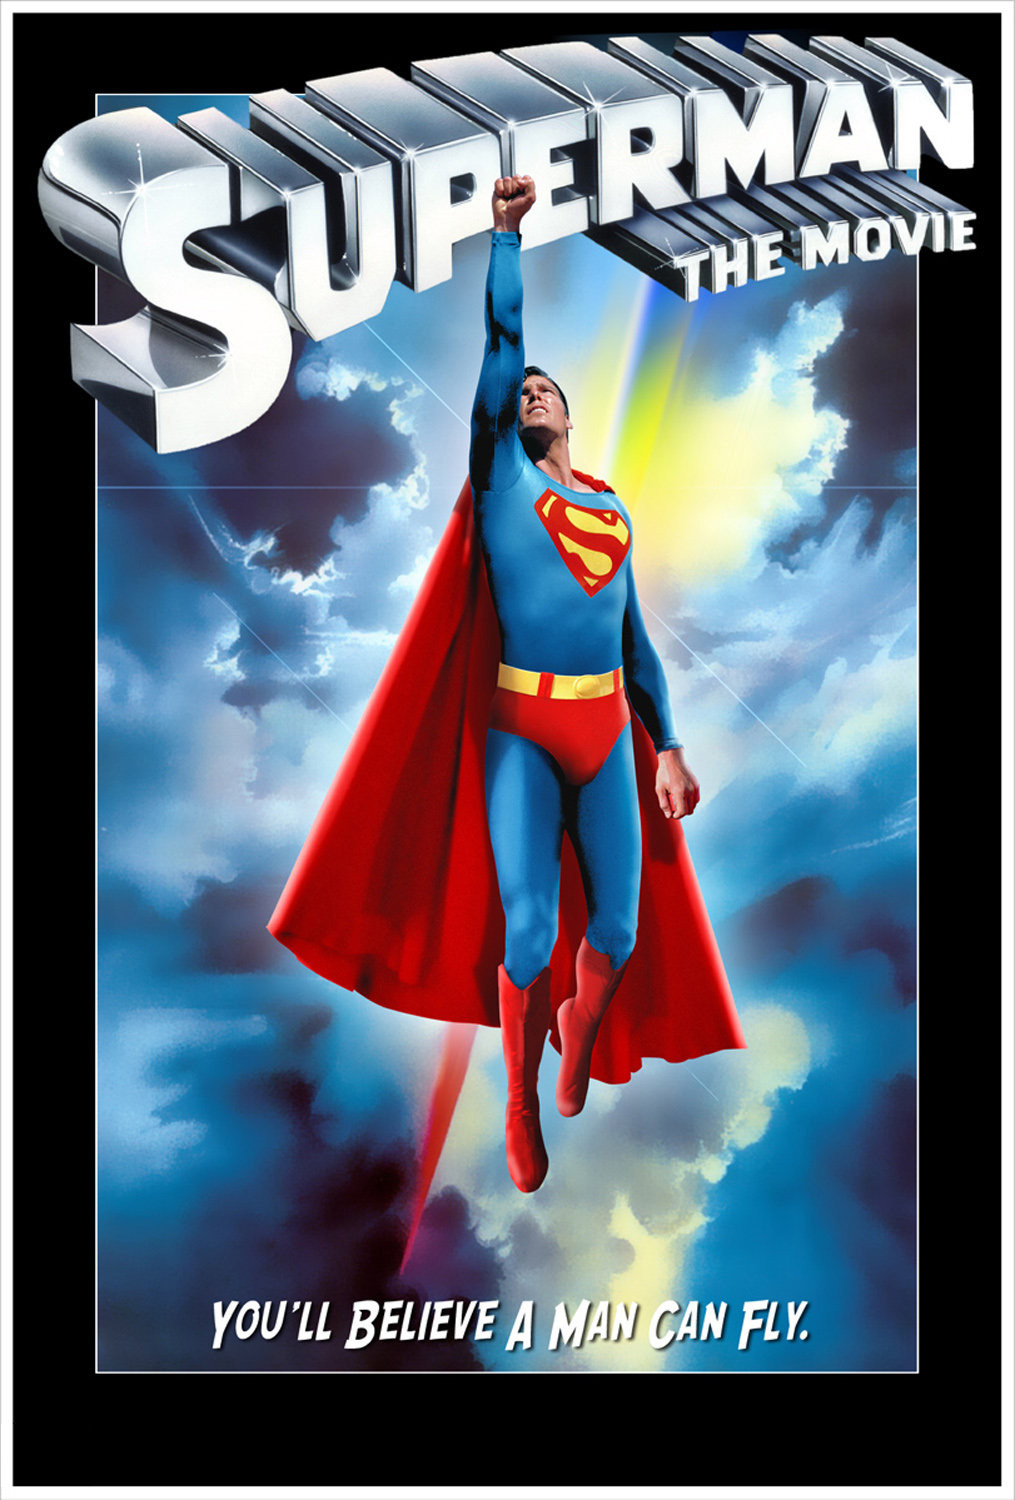 Everyone's favorite Superman is the classic 1978 film starring Christopher Reeve. There has never been a better Superman than Christopher and although it's an old classic and does not compare with the new technology of the day, it is still a must watch for any fans of superhero films.